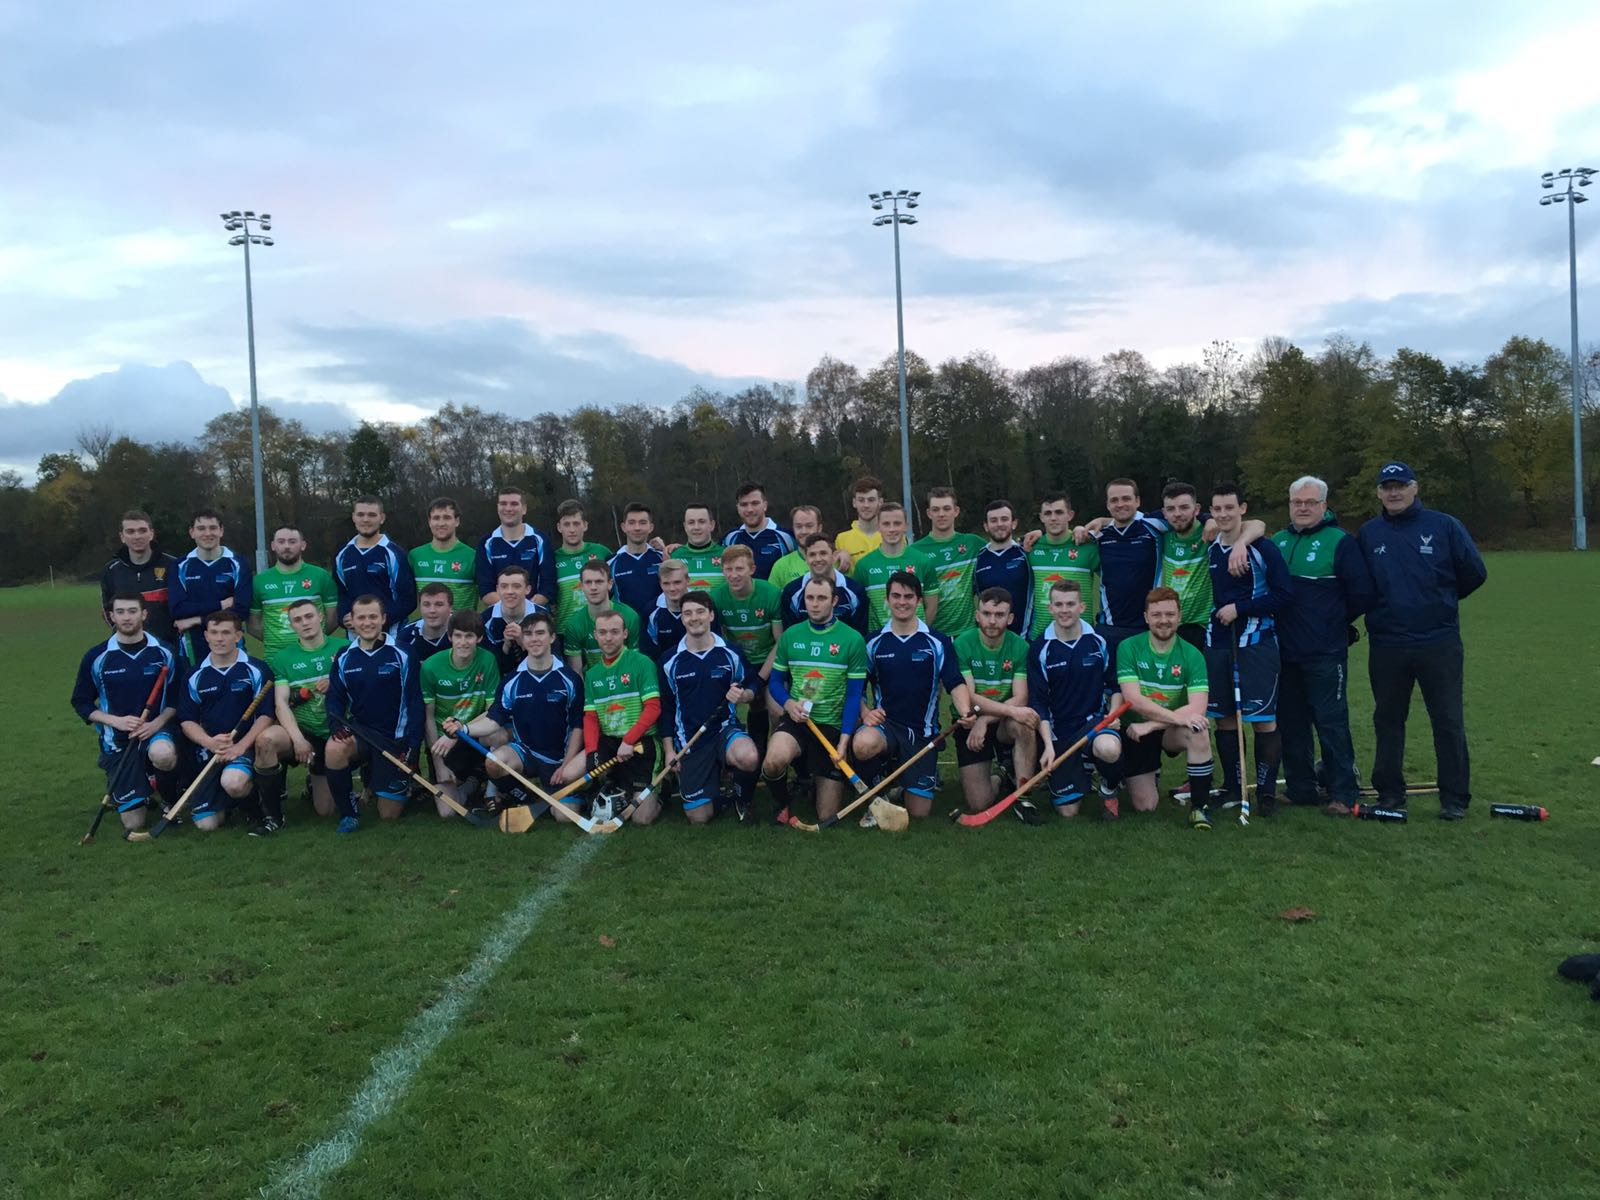 Queen's clash with Scottish Universities in Shinty challenges